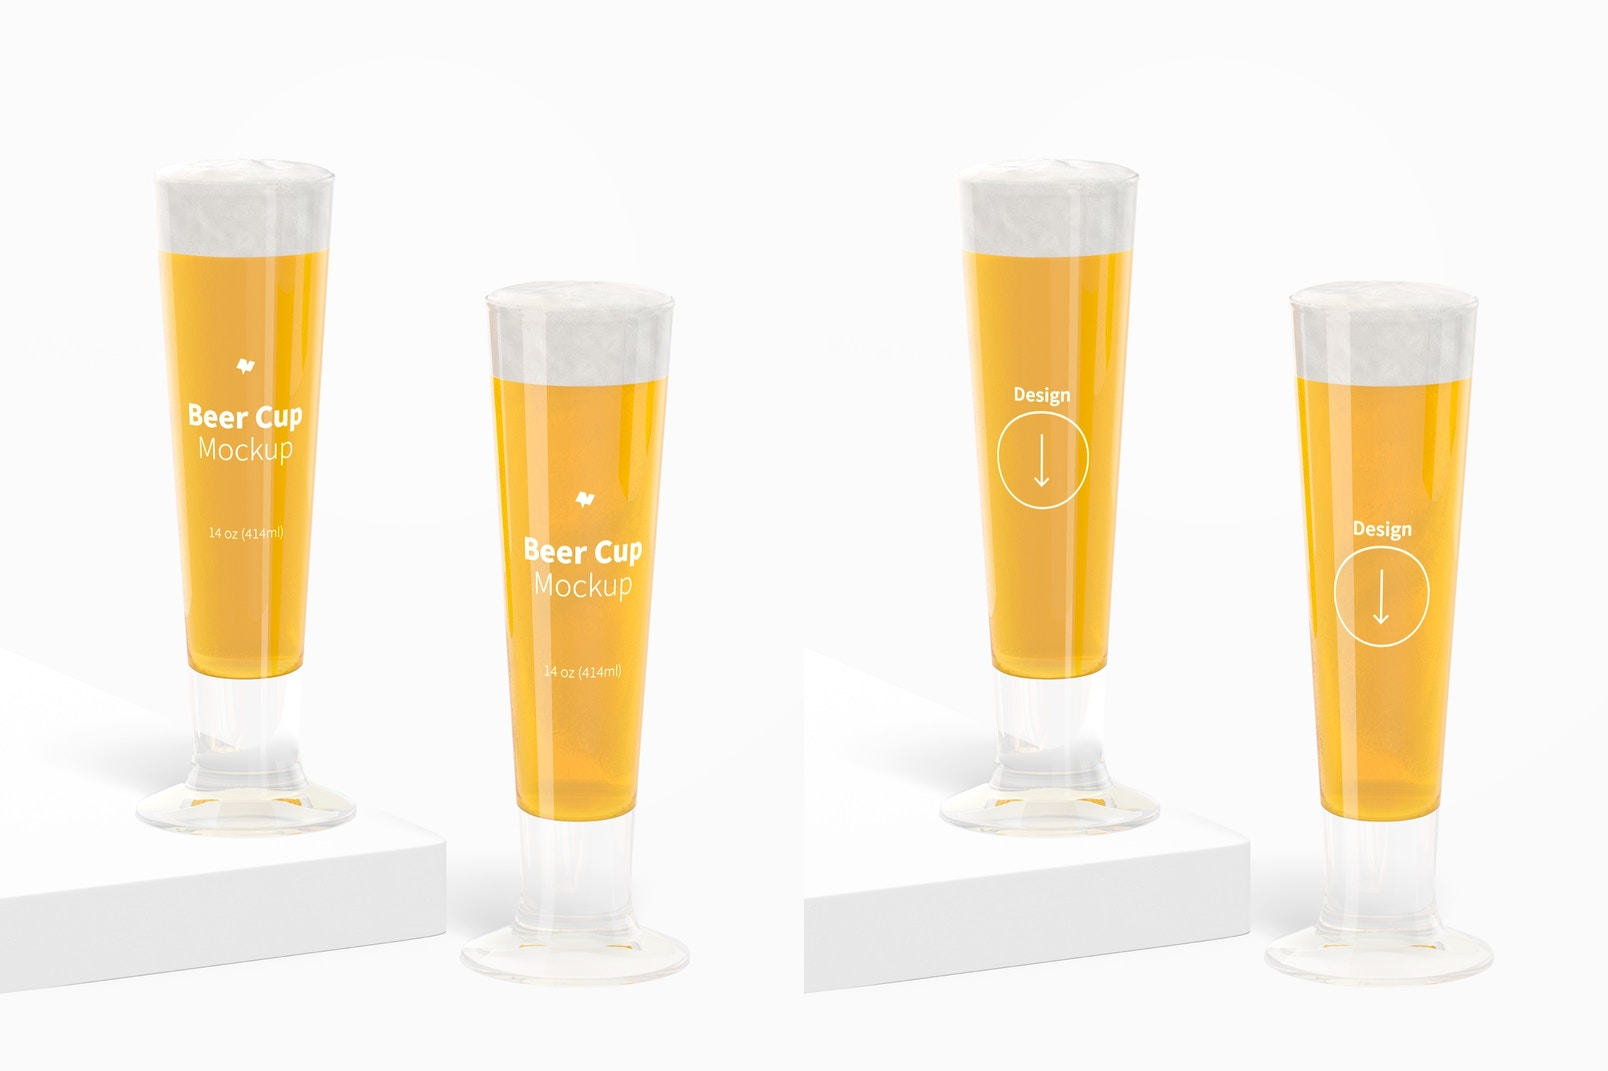 14 oz Glass Beer Cups Mockup, Front View